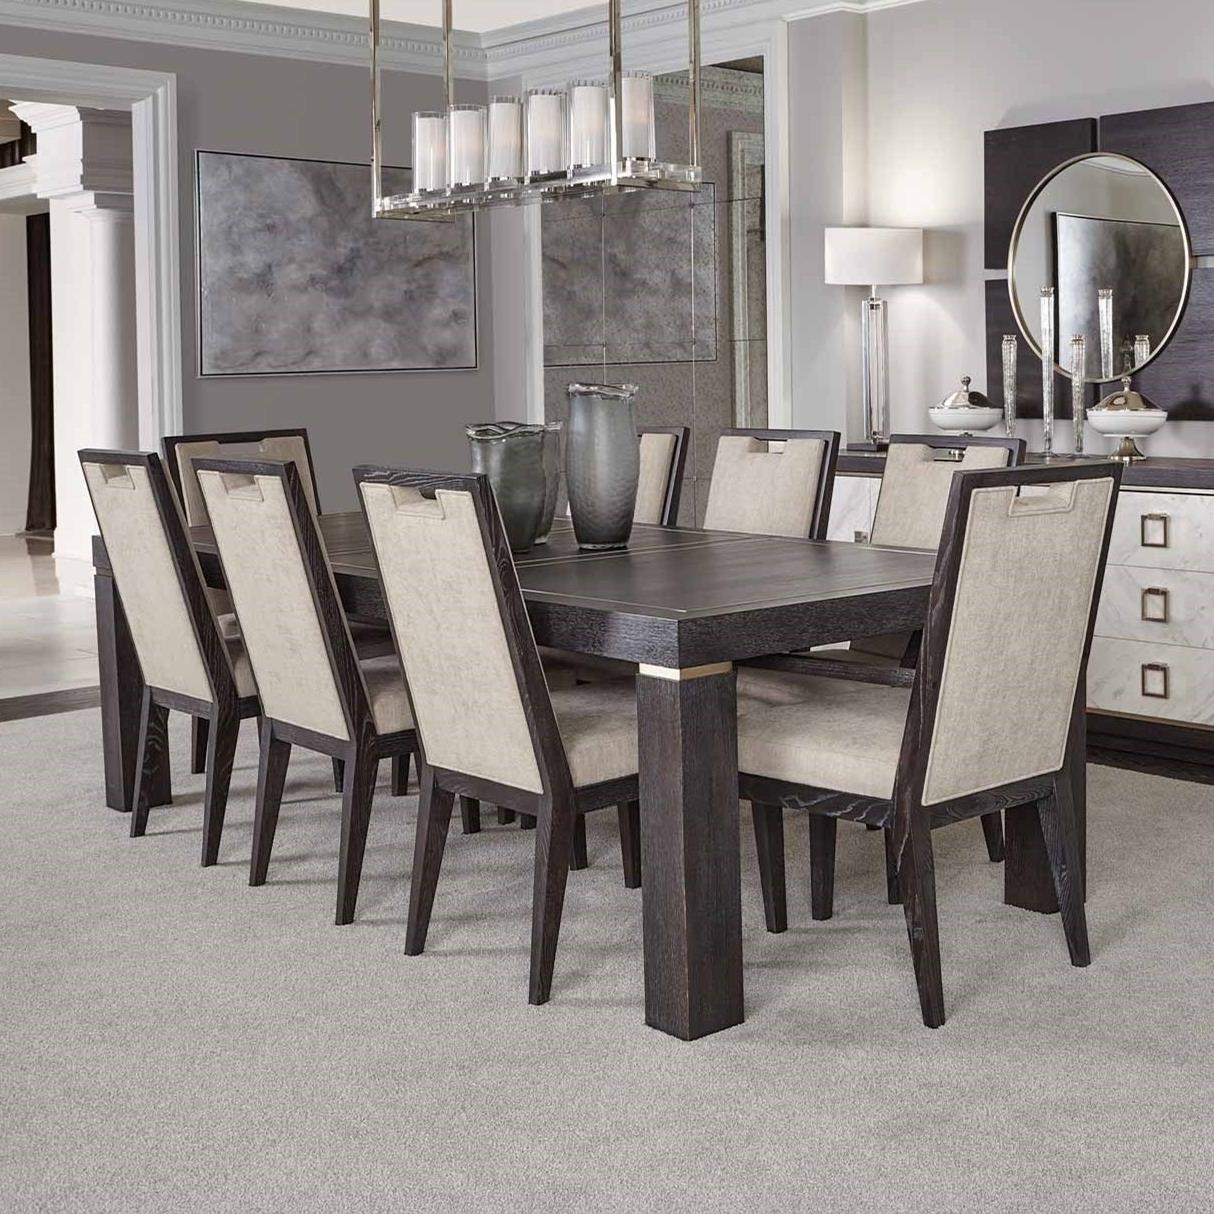 Decorage 9 Piece Table and Chair Set by Bernhardt at Baer's Furniture